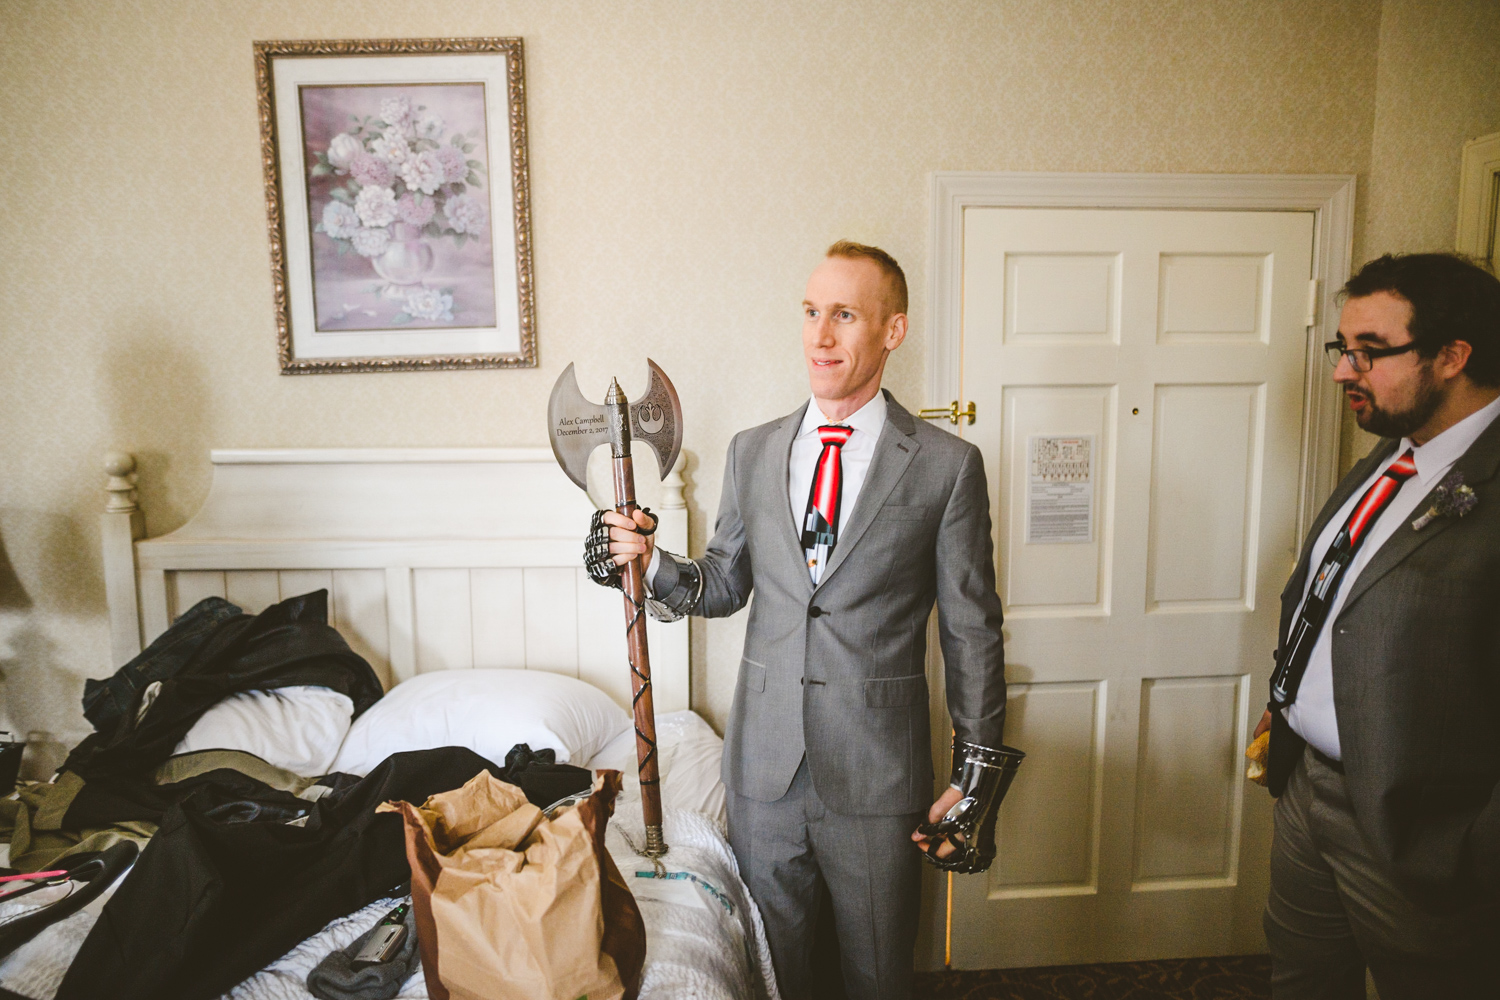 005 - groomsman holding giant wedding axe.jpg